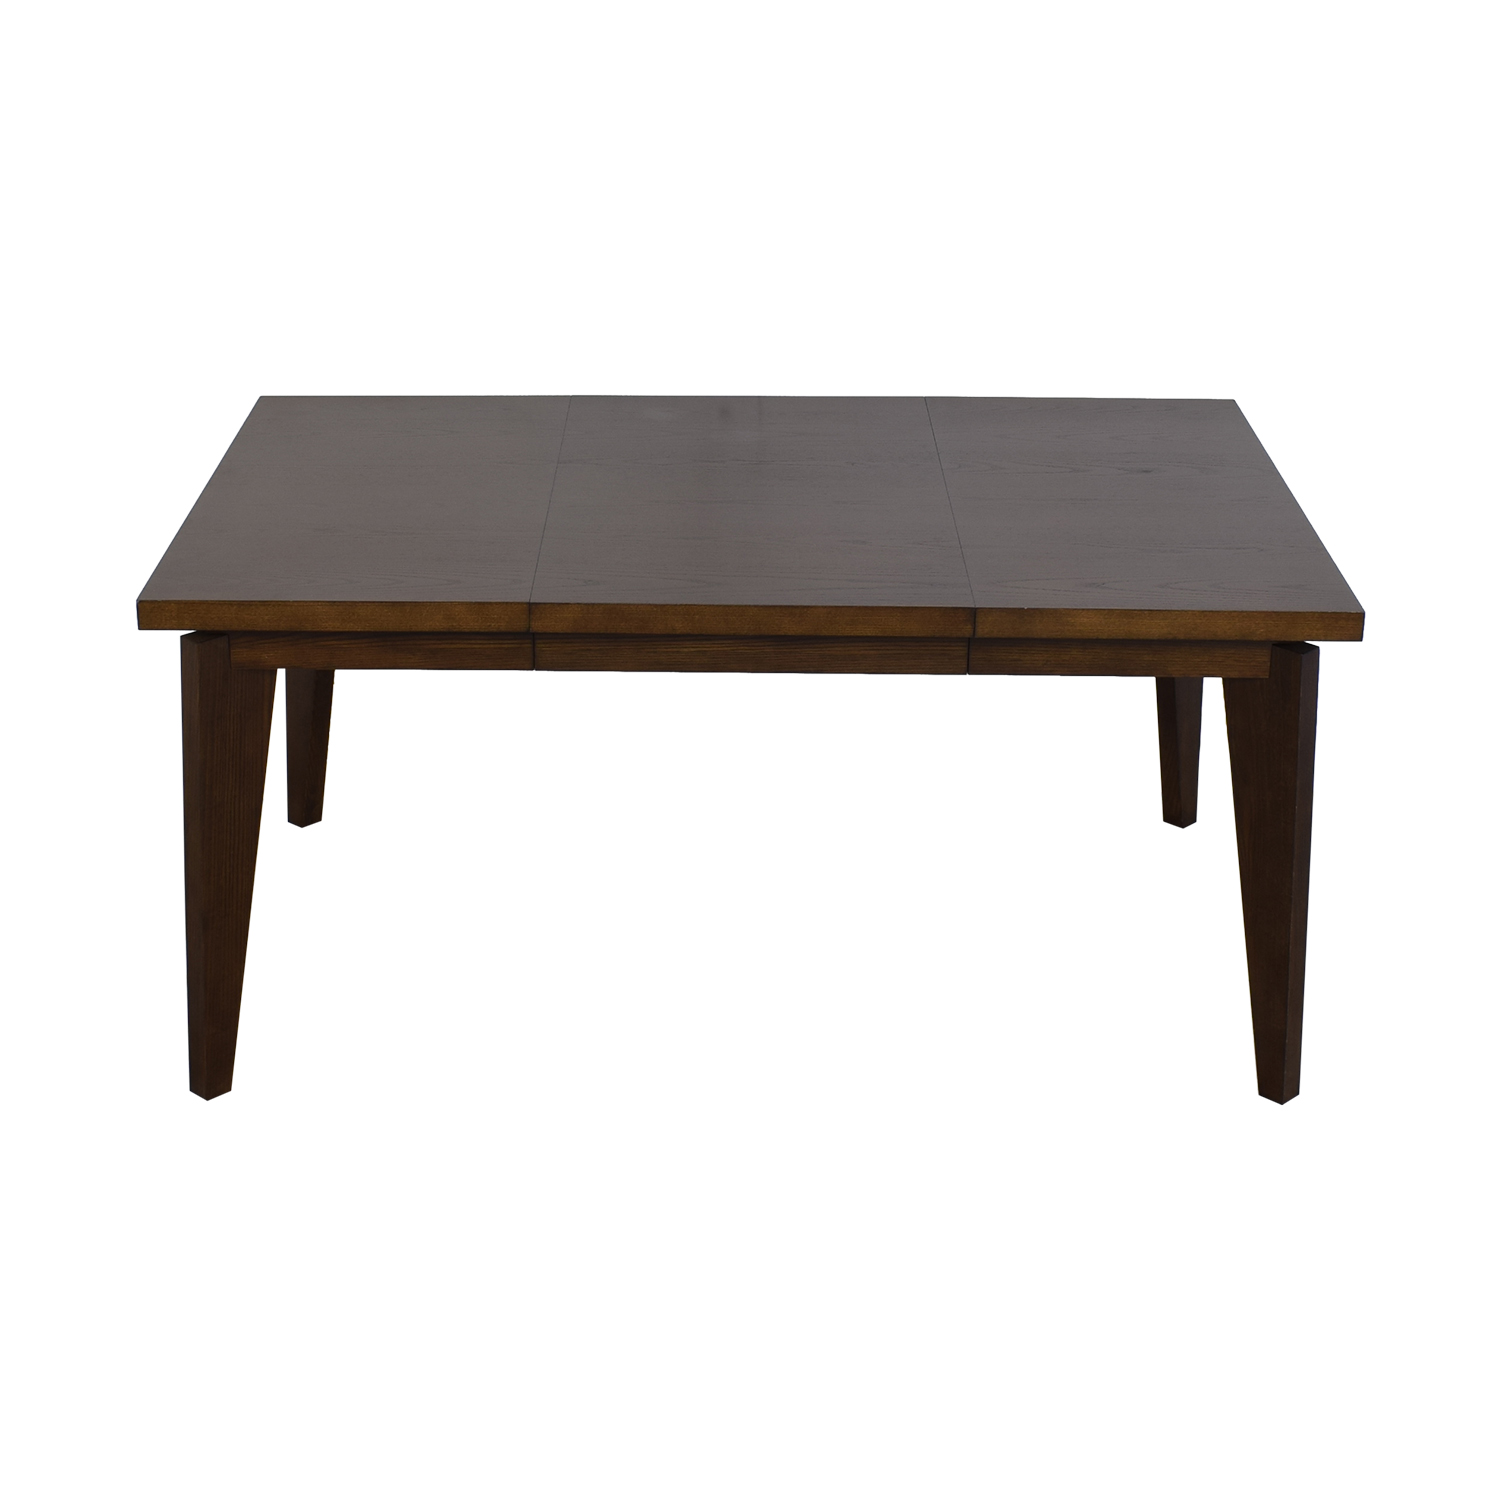 West Elm West Elm Angled Leg Expandable Table price